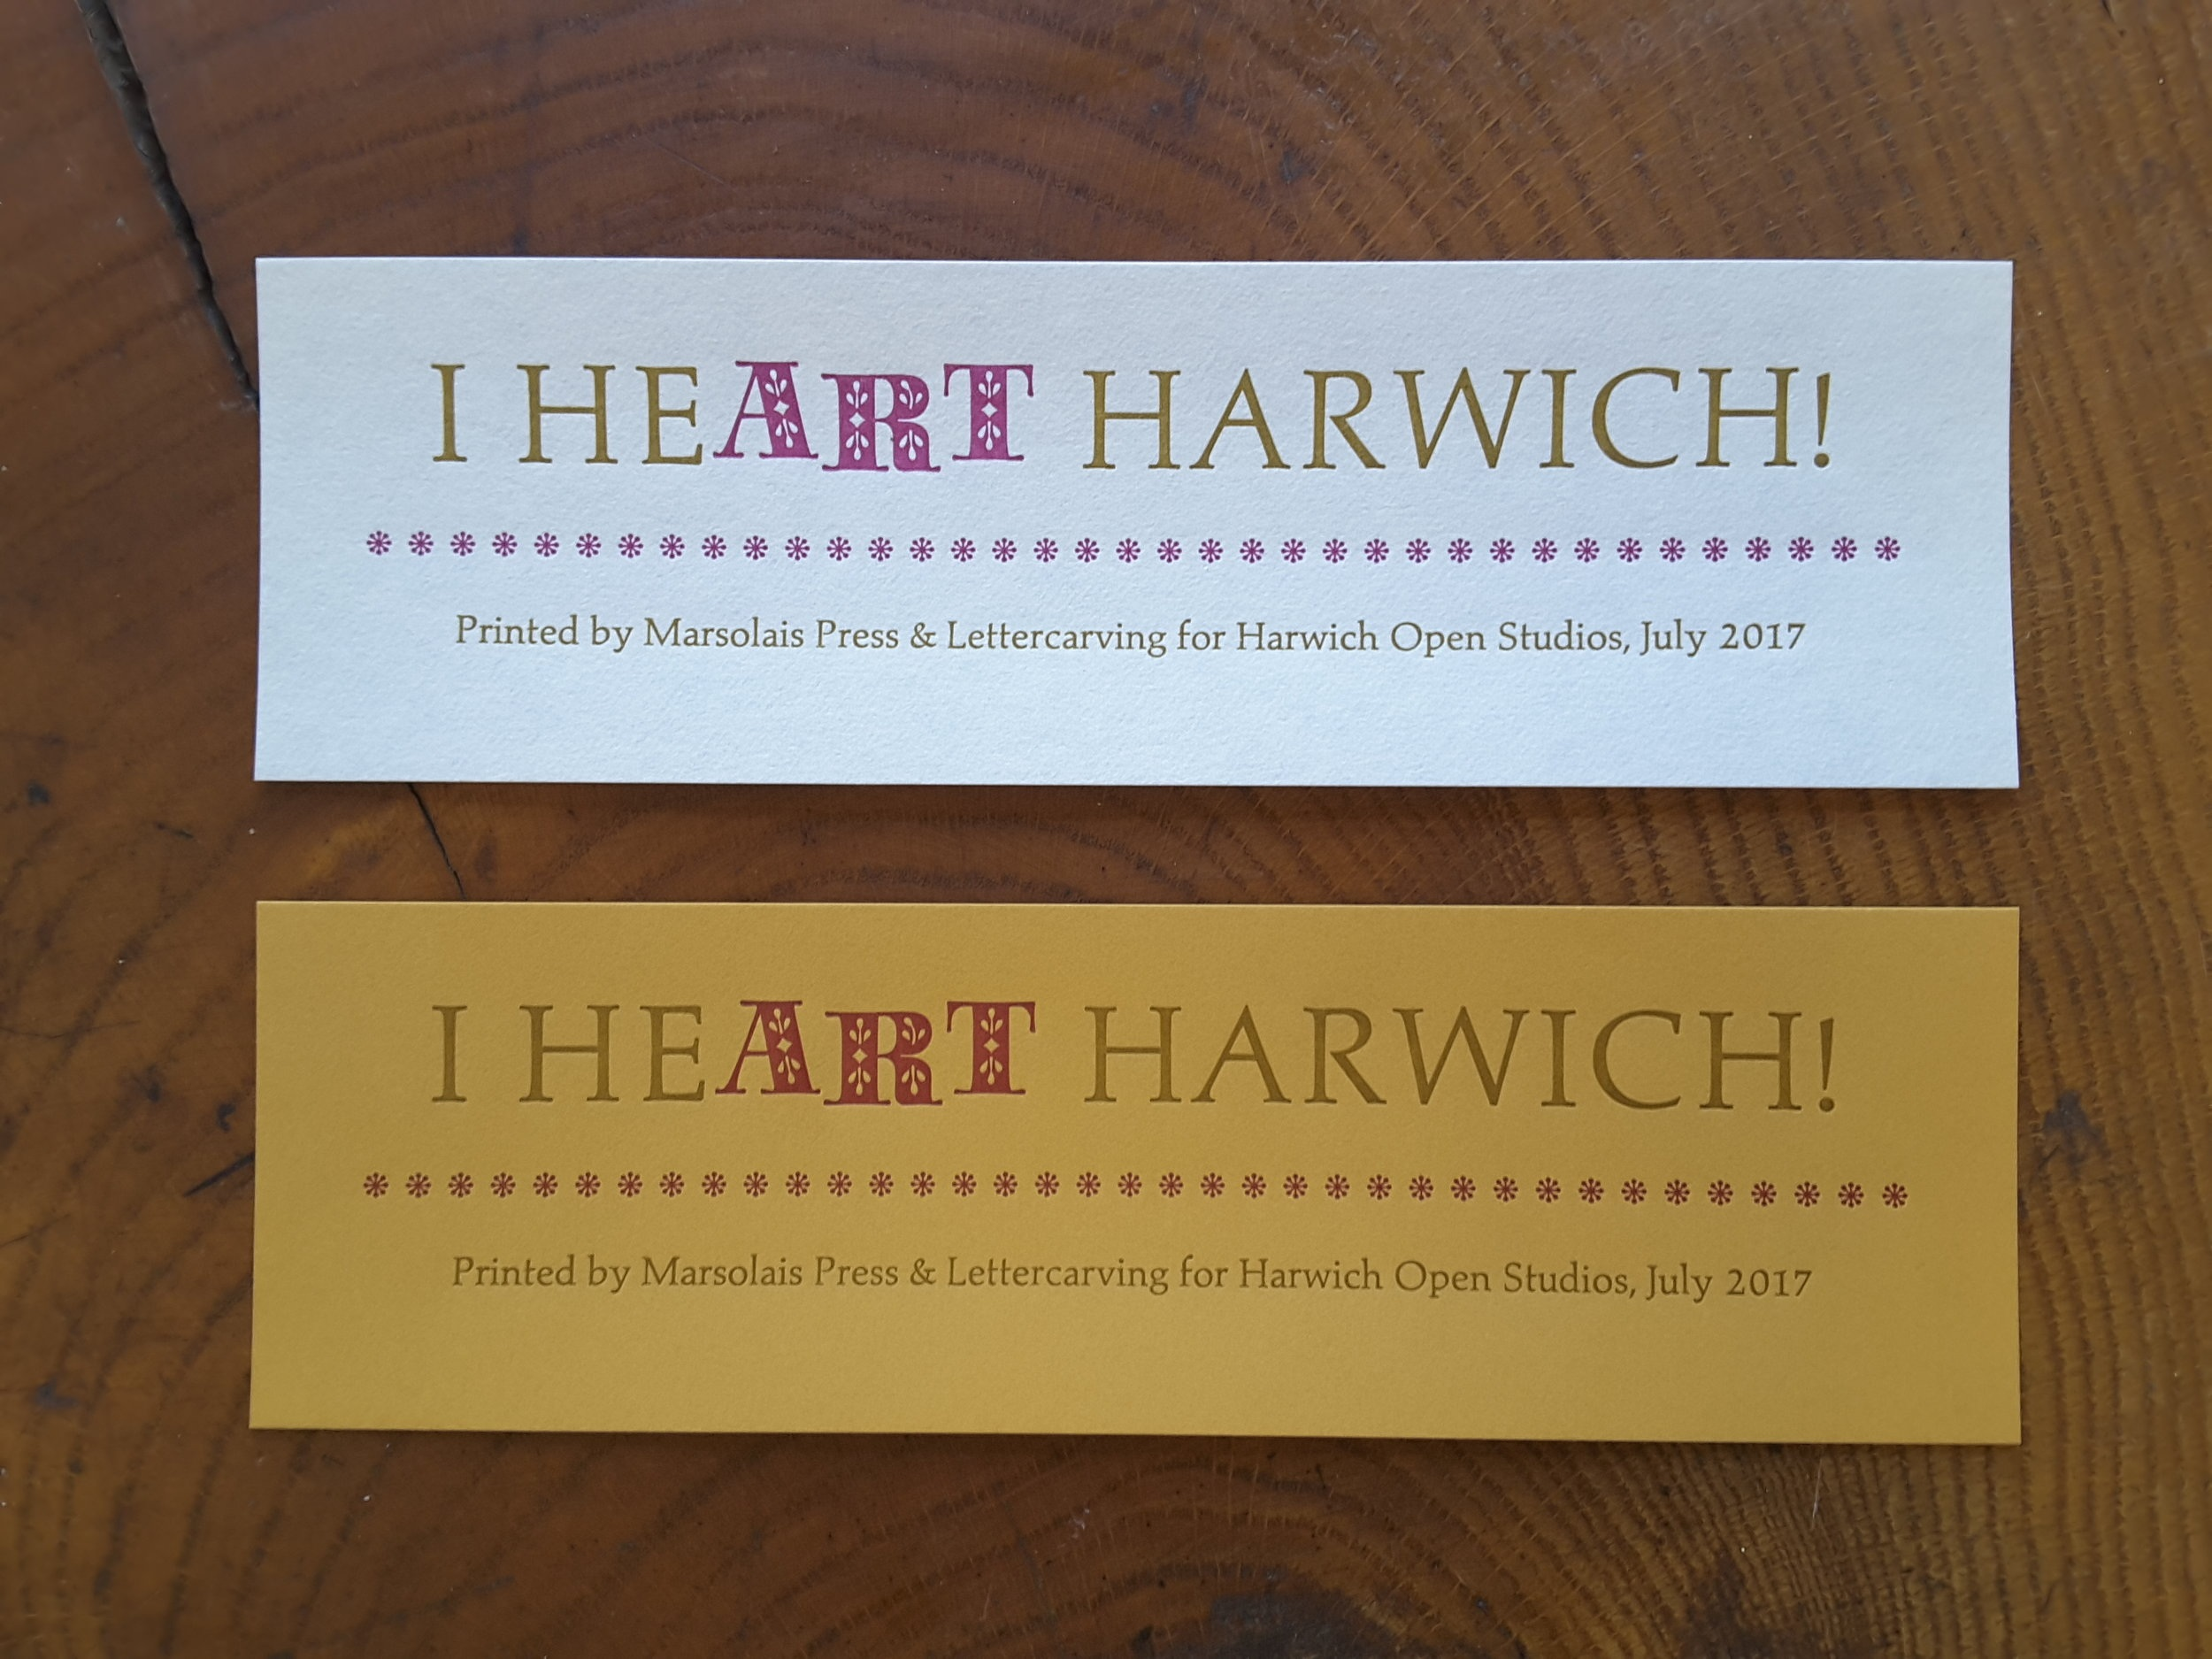 Bookmarks - When people visit my shop at the Harwich Cultural Center I like to have something to give them as a keepsake. These bookmarks were printed in time to hand out at the Center's first Open Studios in July 2017.